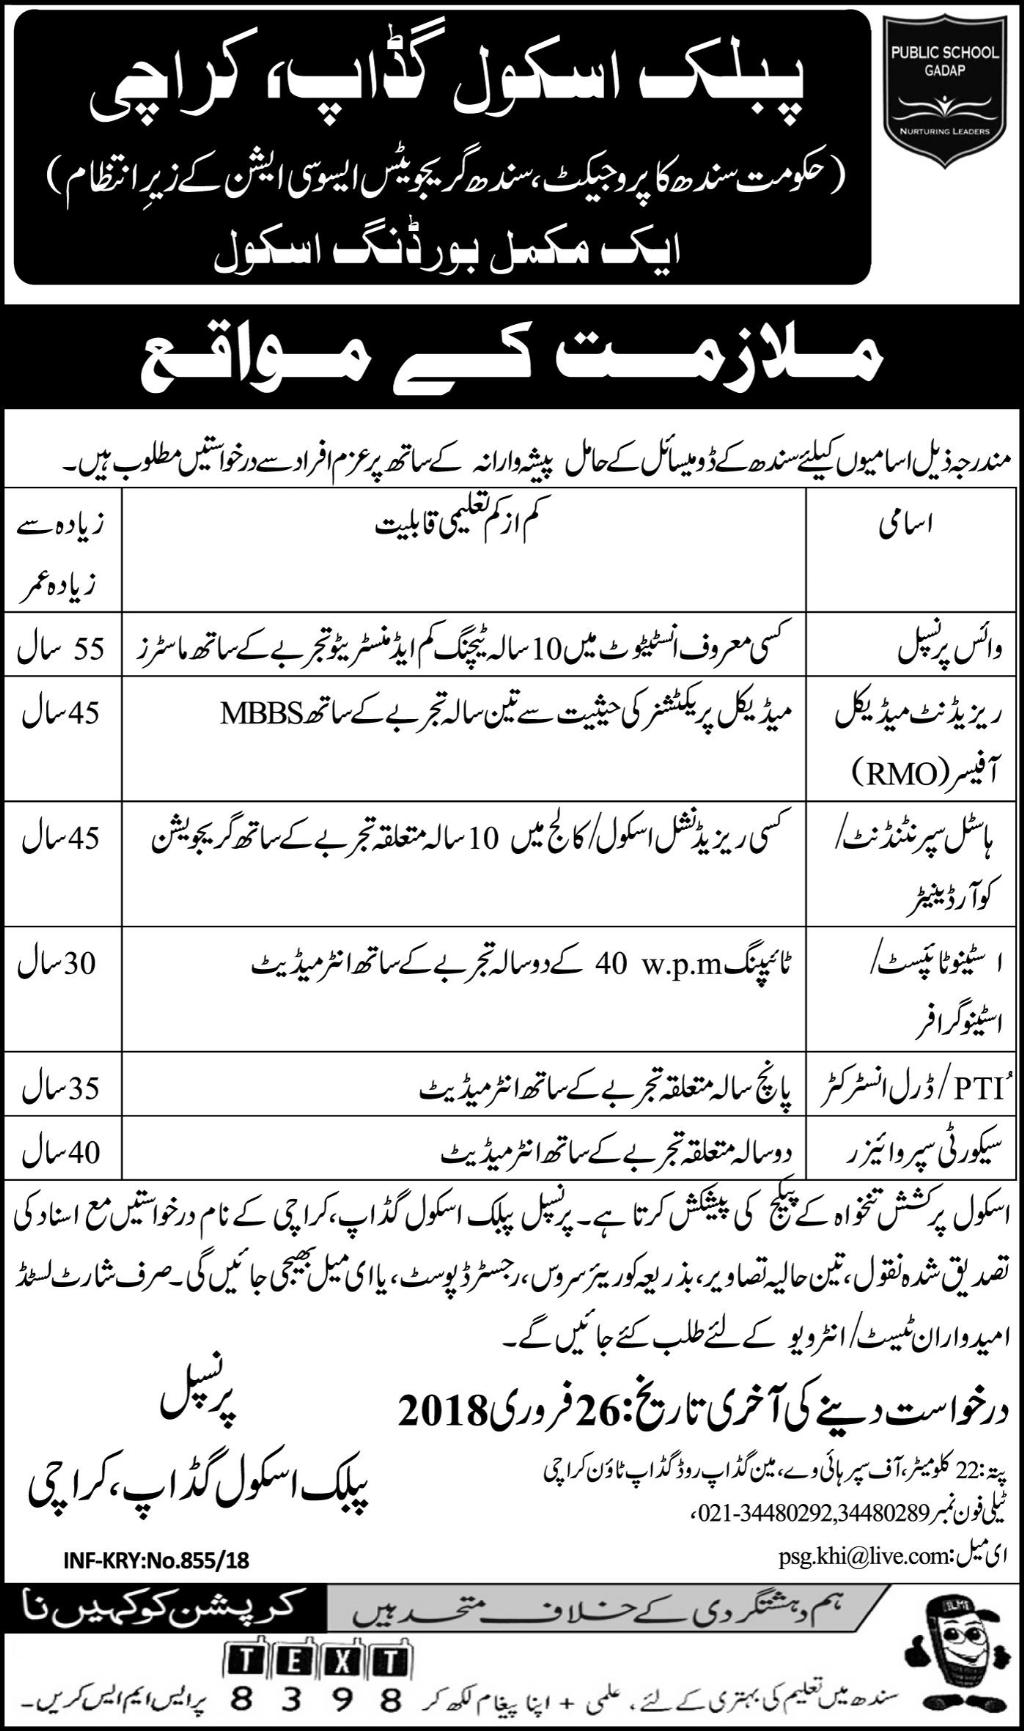 Public School Gadab Karachi Management Jobs 2019 Job